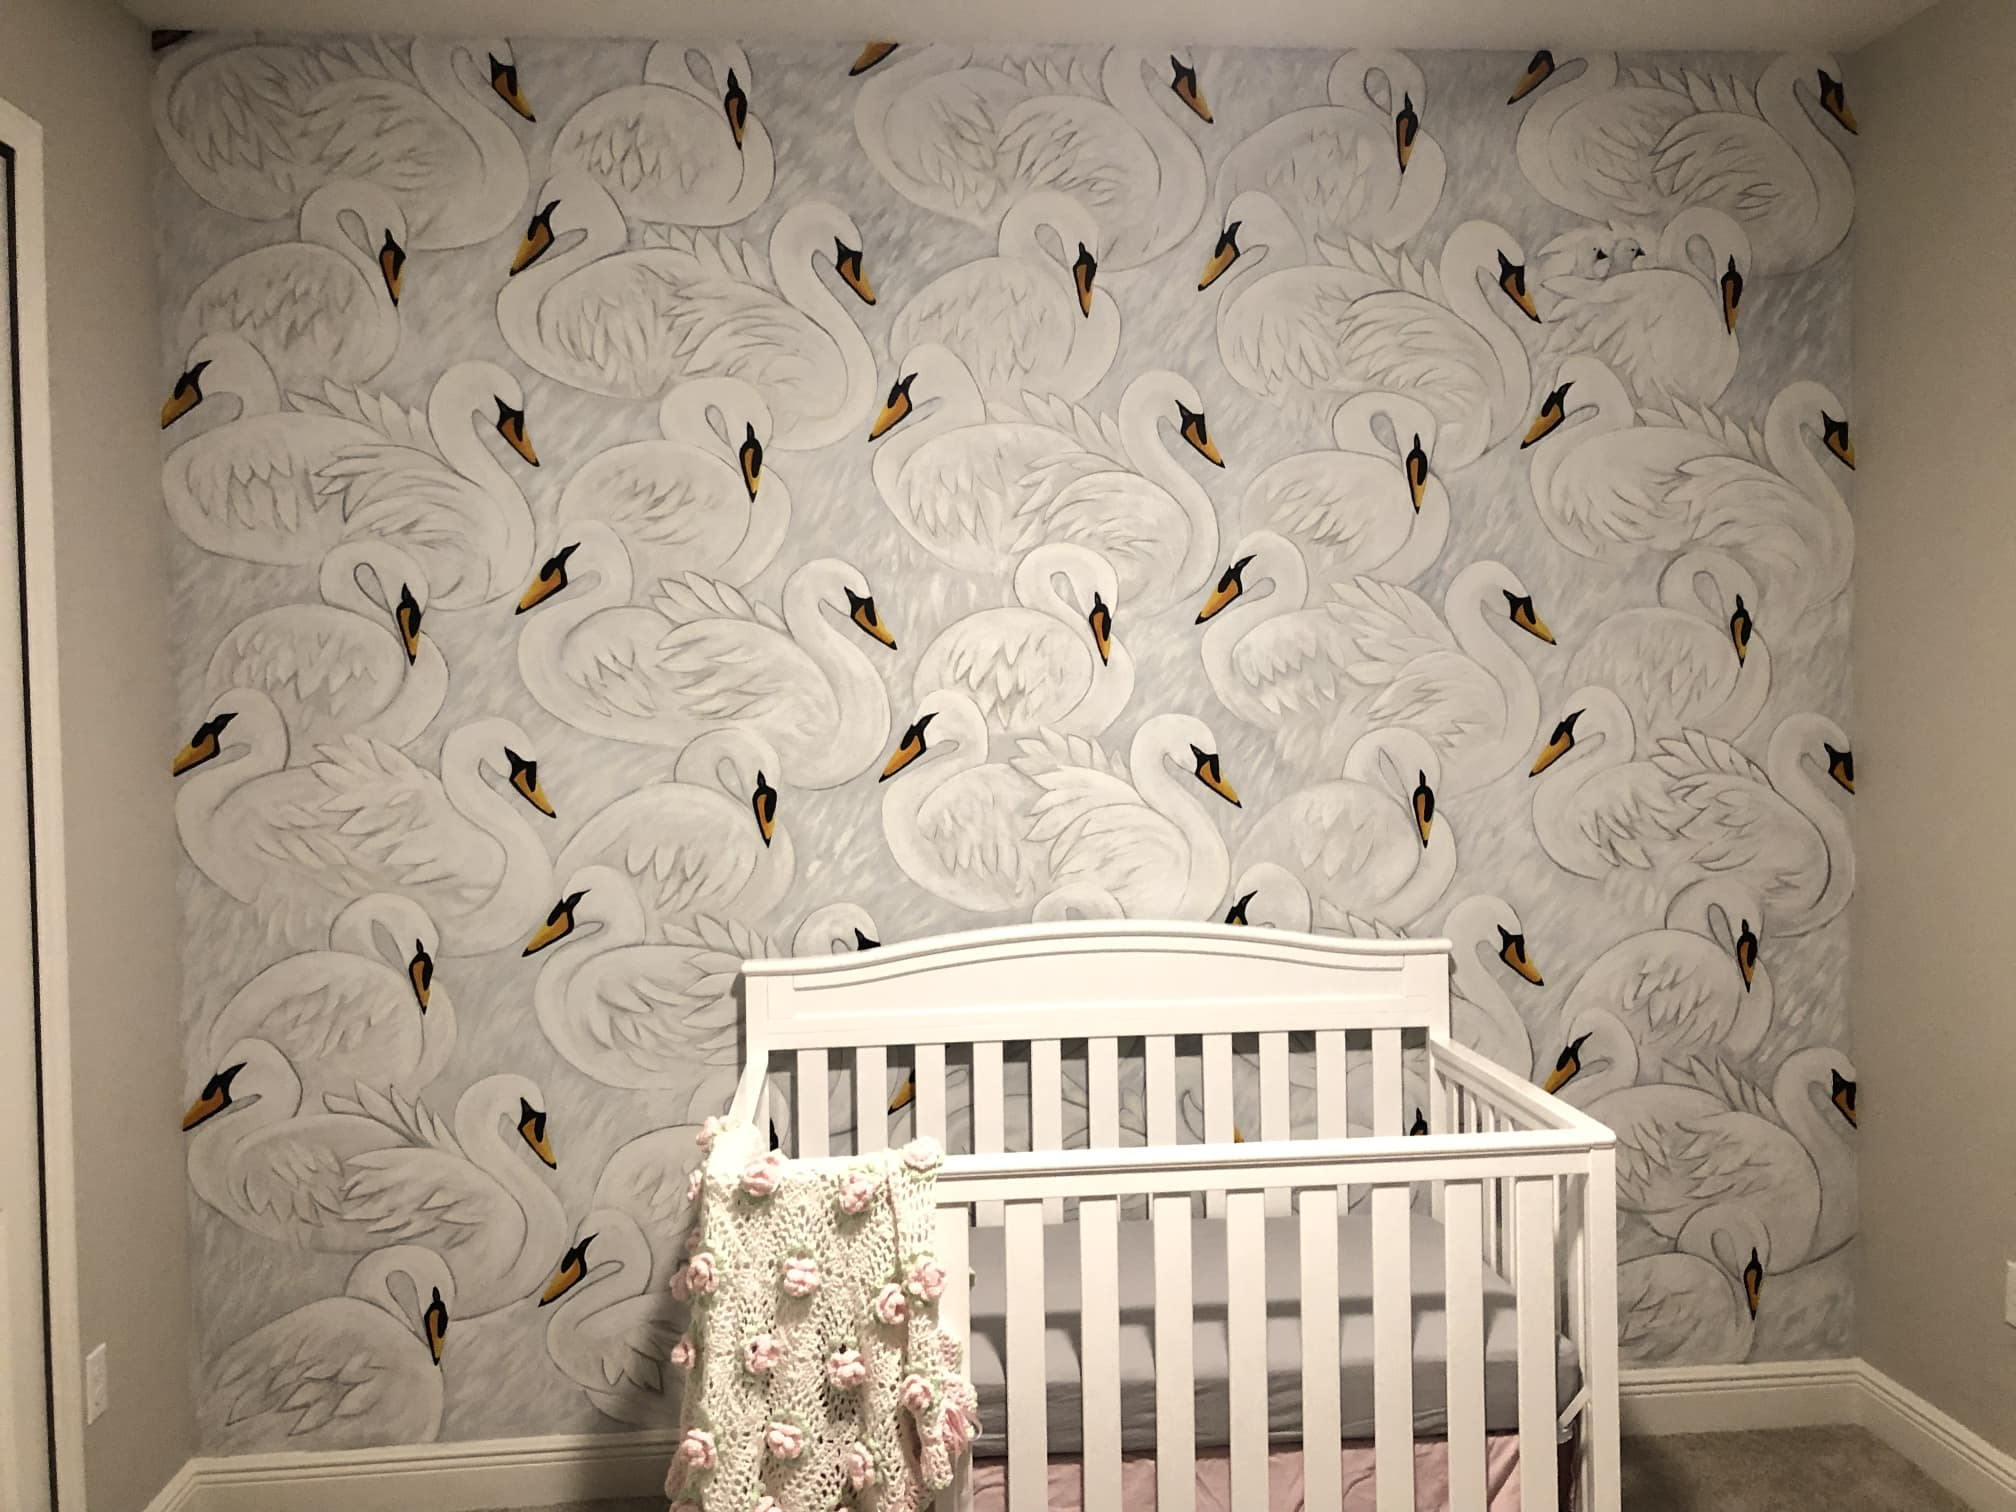 Swans in Nursery